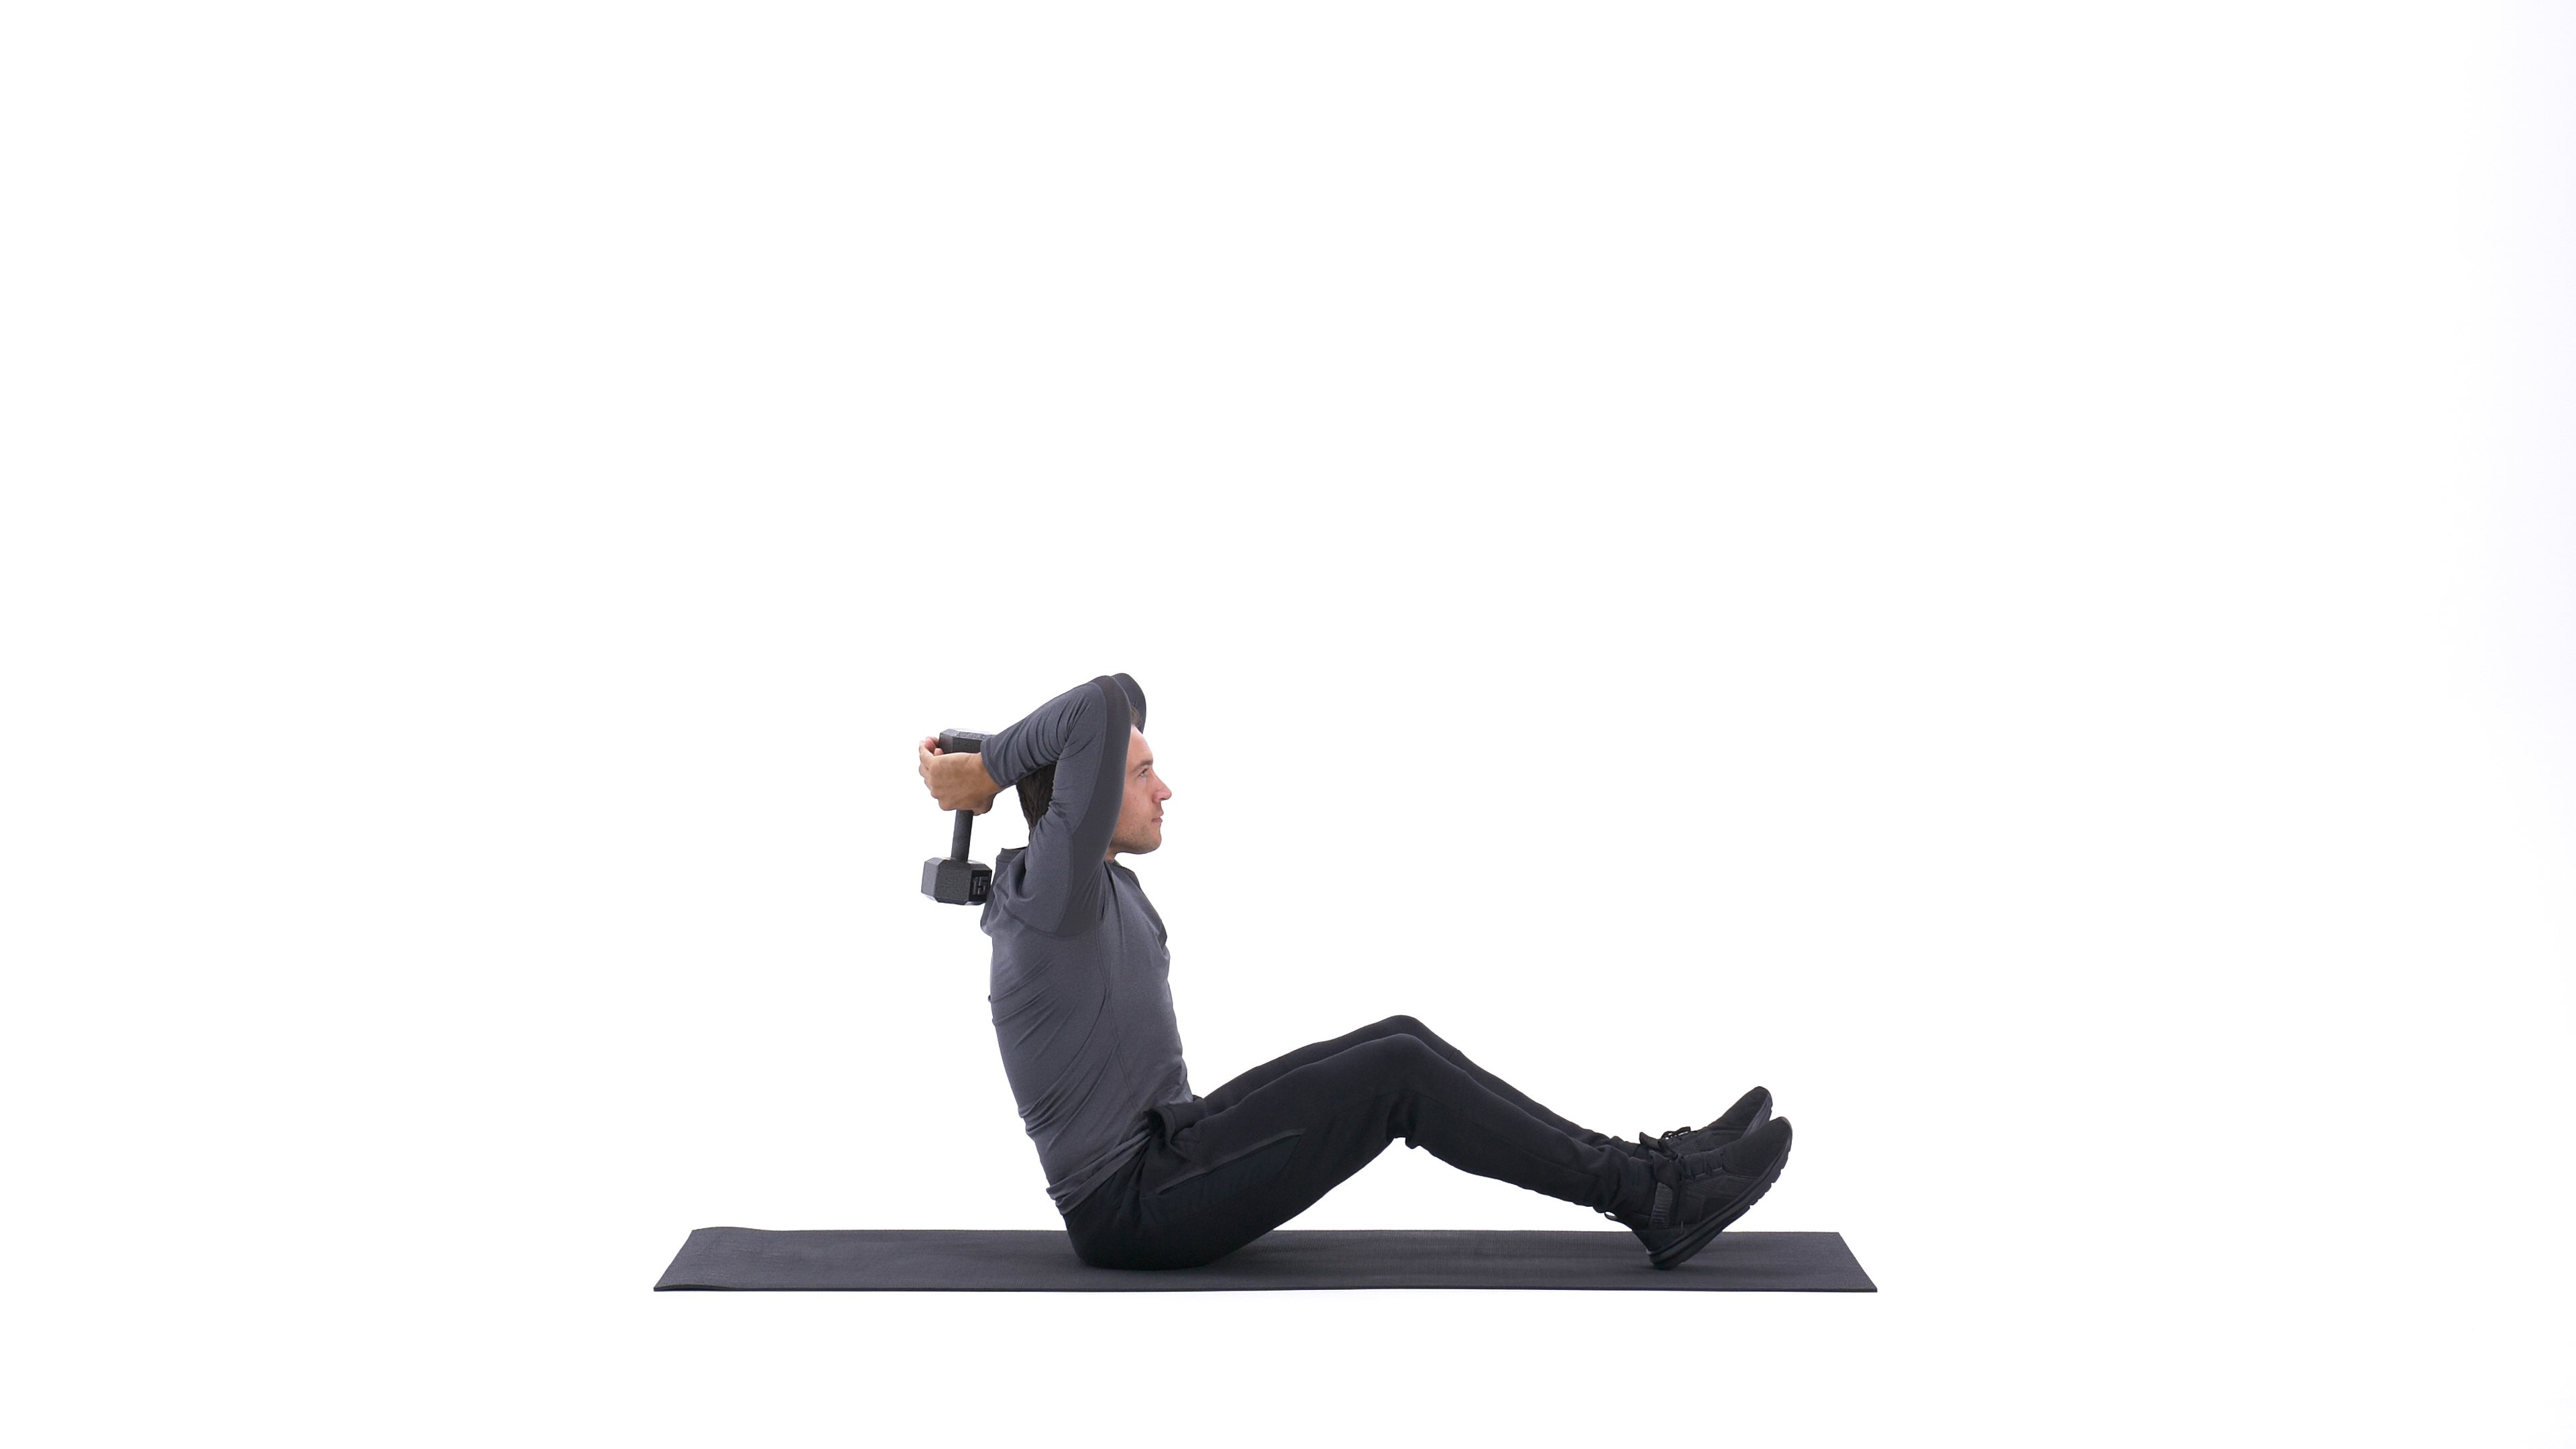 V-sit with overhead triceps extension image